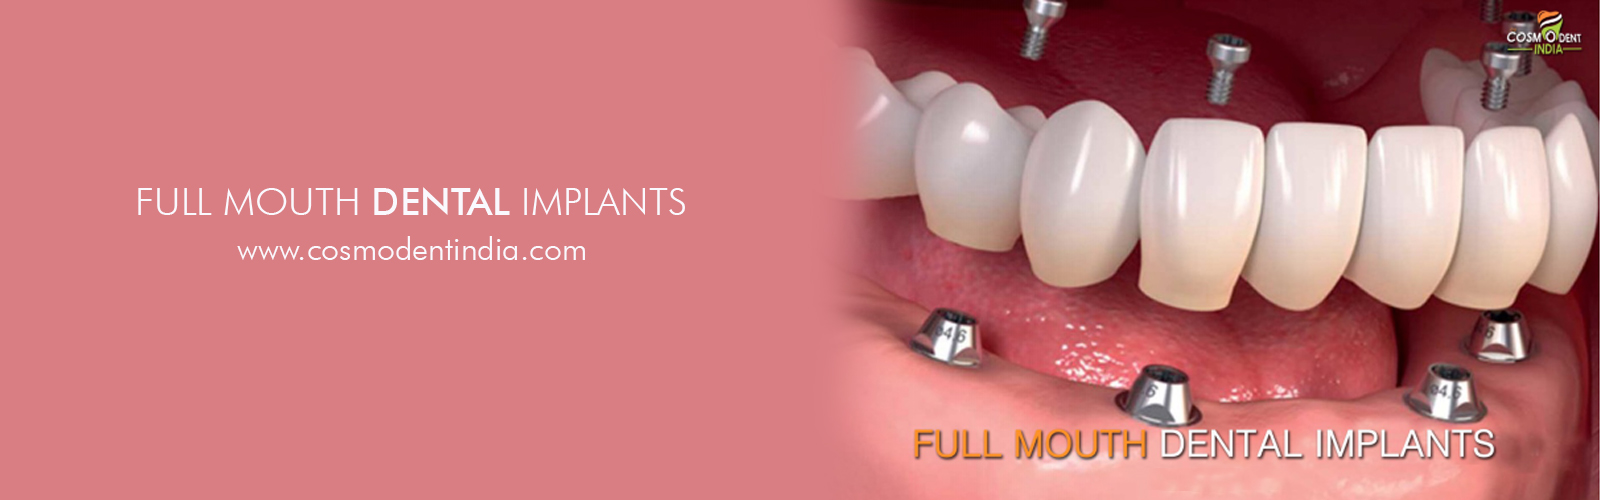 Full Mouth Dental Implants Cost In India Cosmodent India